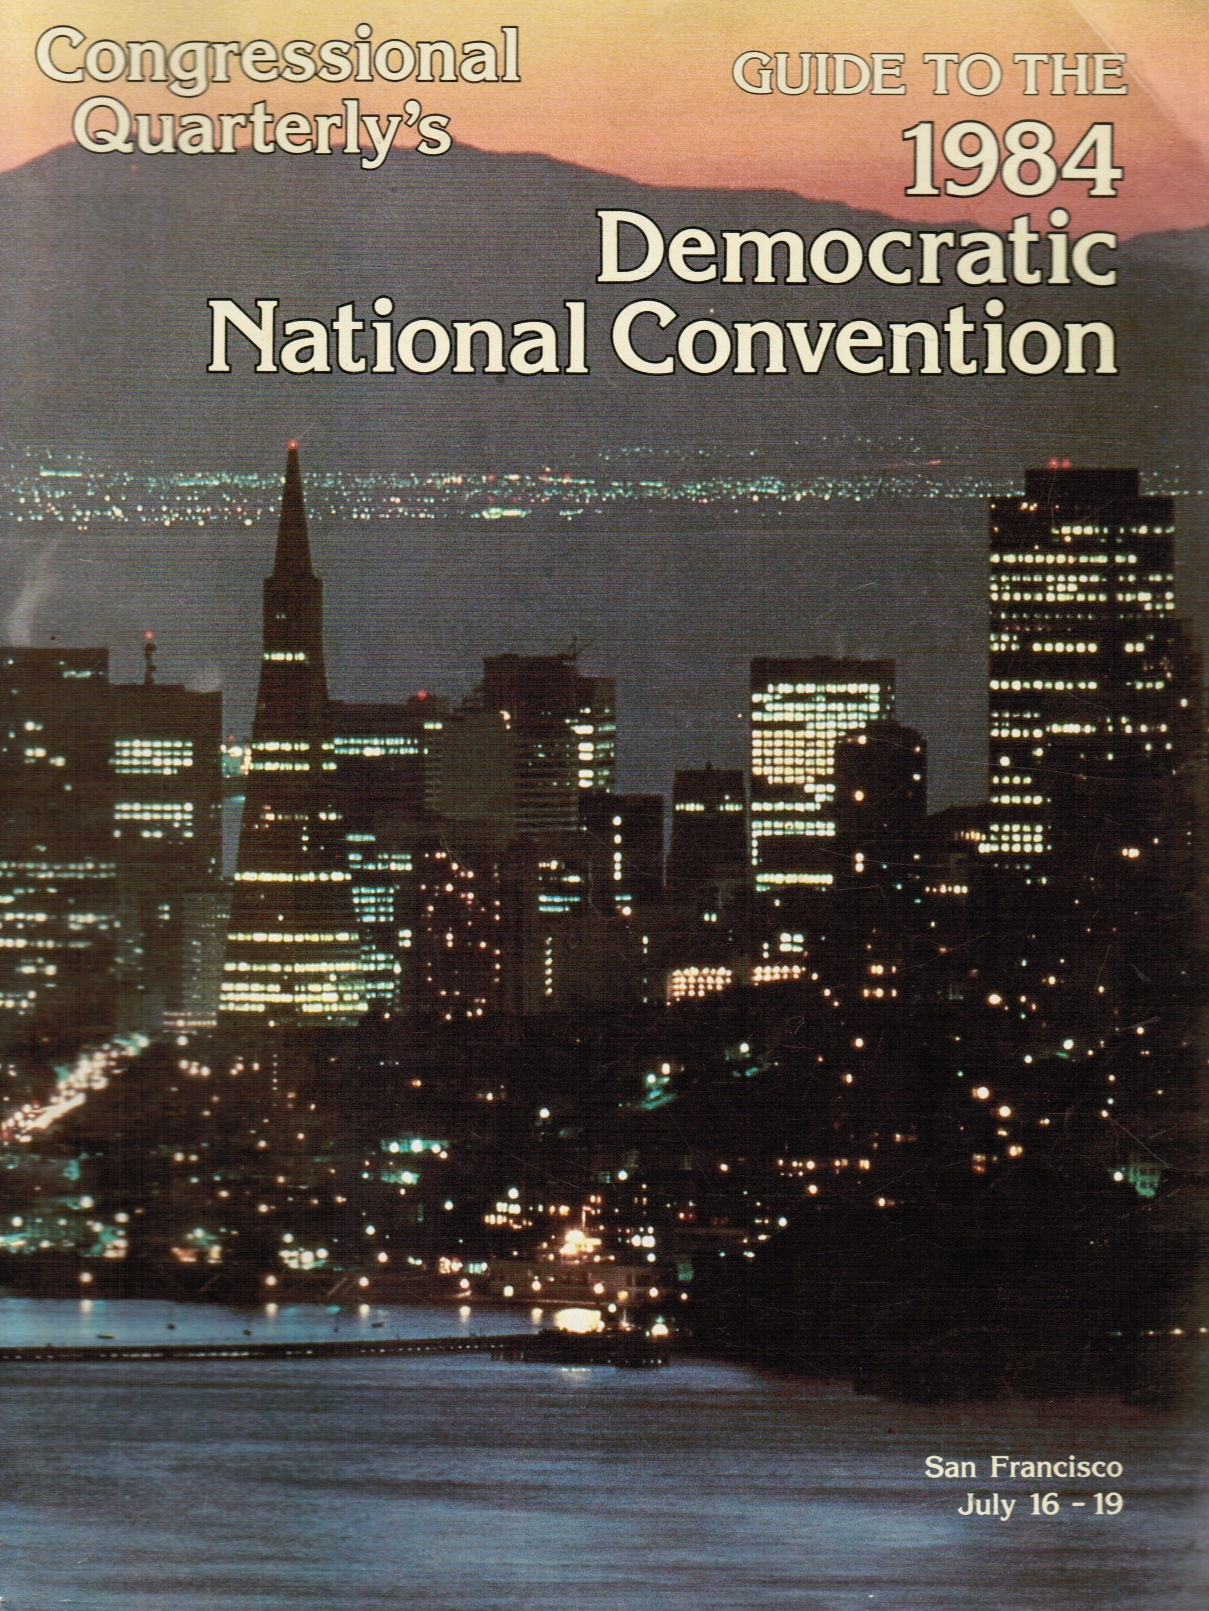 Image for Congressional Quarterly's Guide to the 1984 Democratic National Convention San Francisco July 16 to 19, 1984